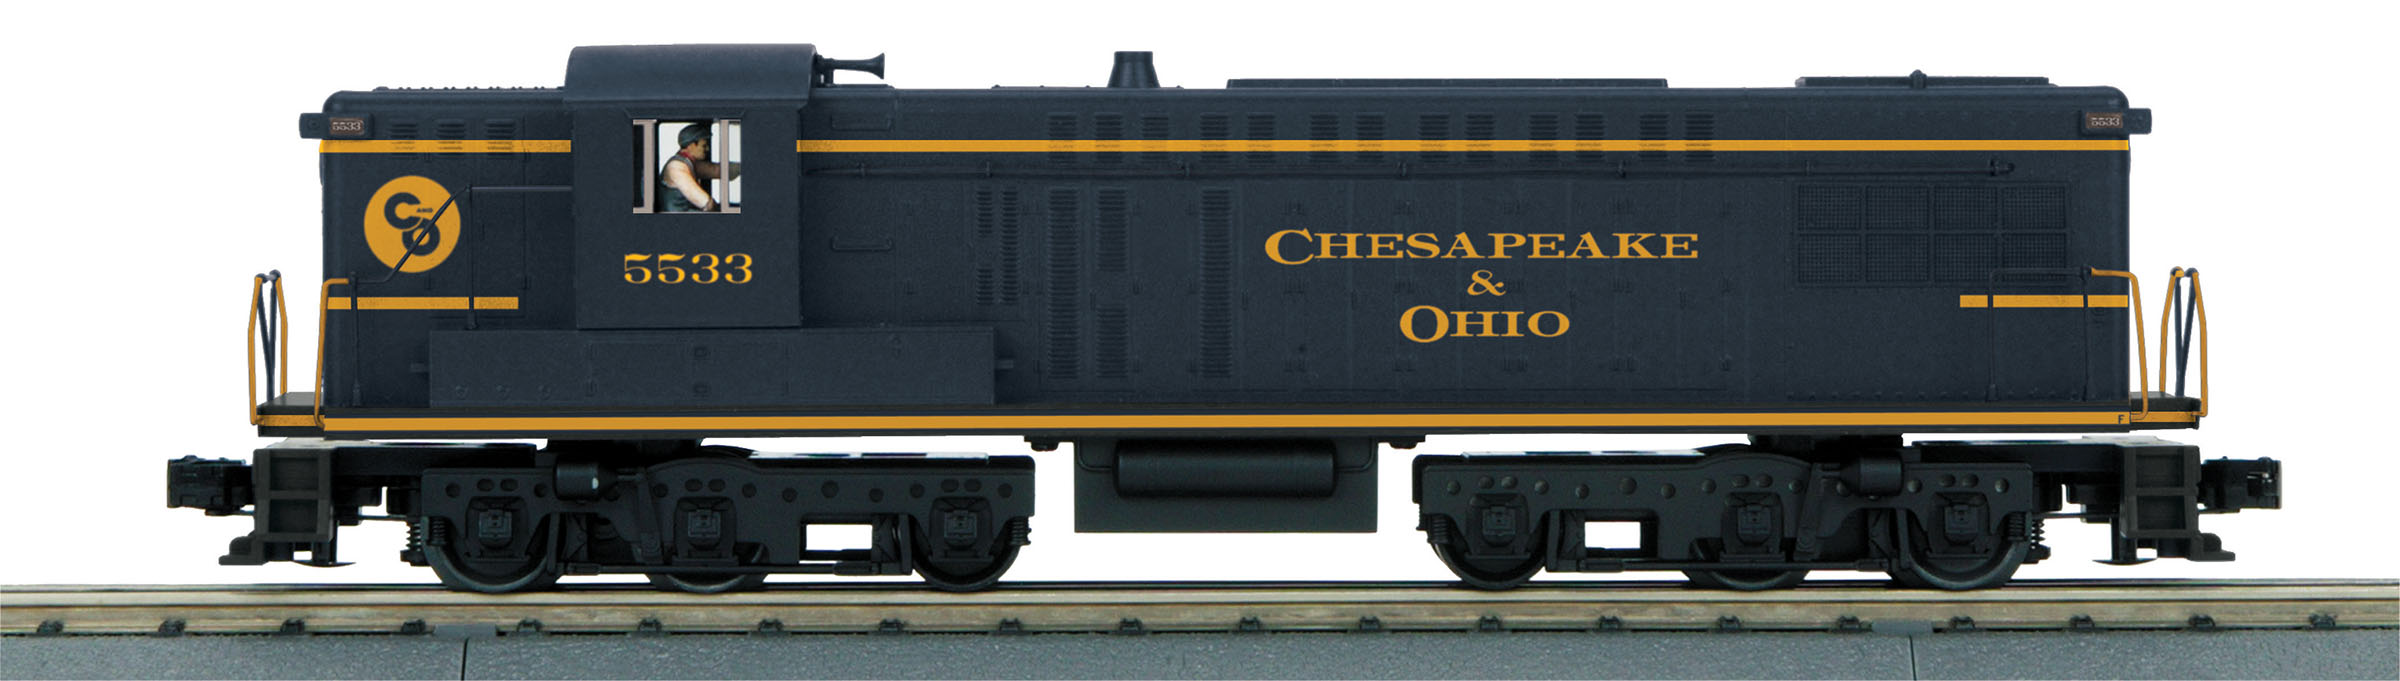 MTH30205891 MTH Electric Trains O-27 AS-16 w/PS3, C&O #5533